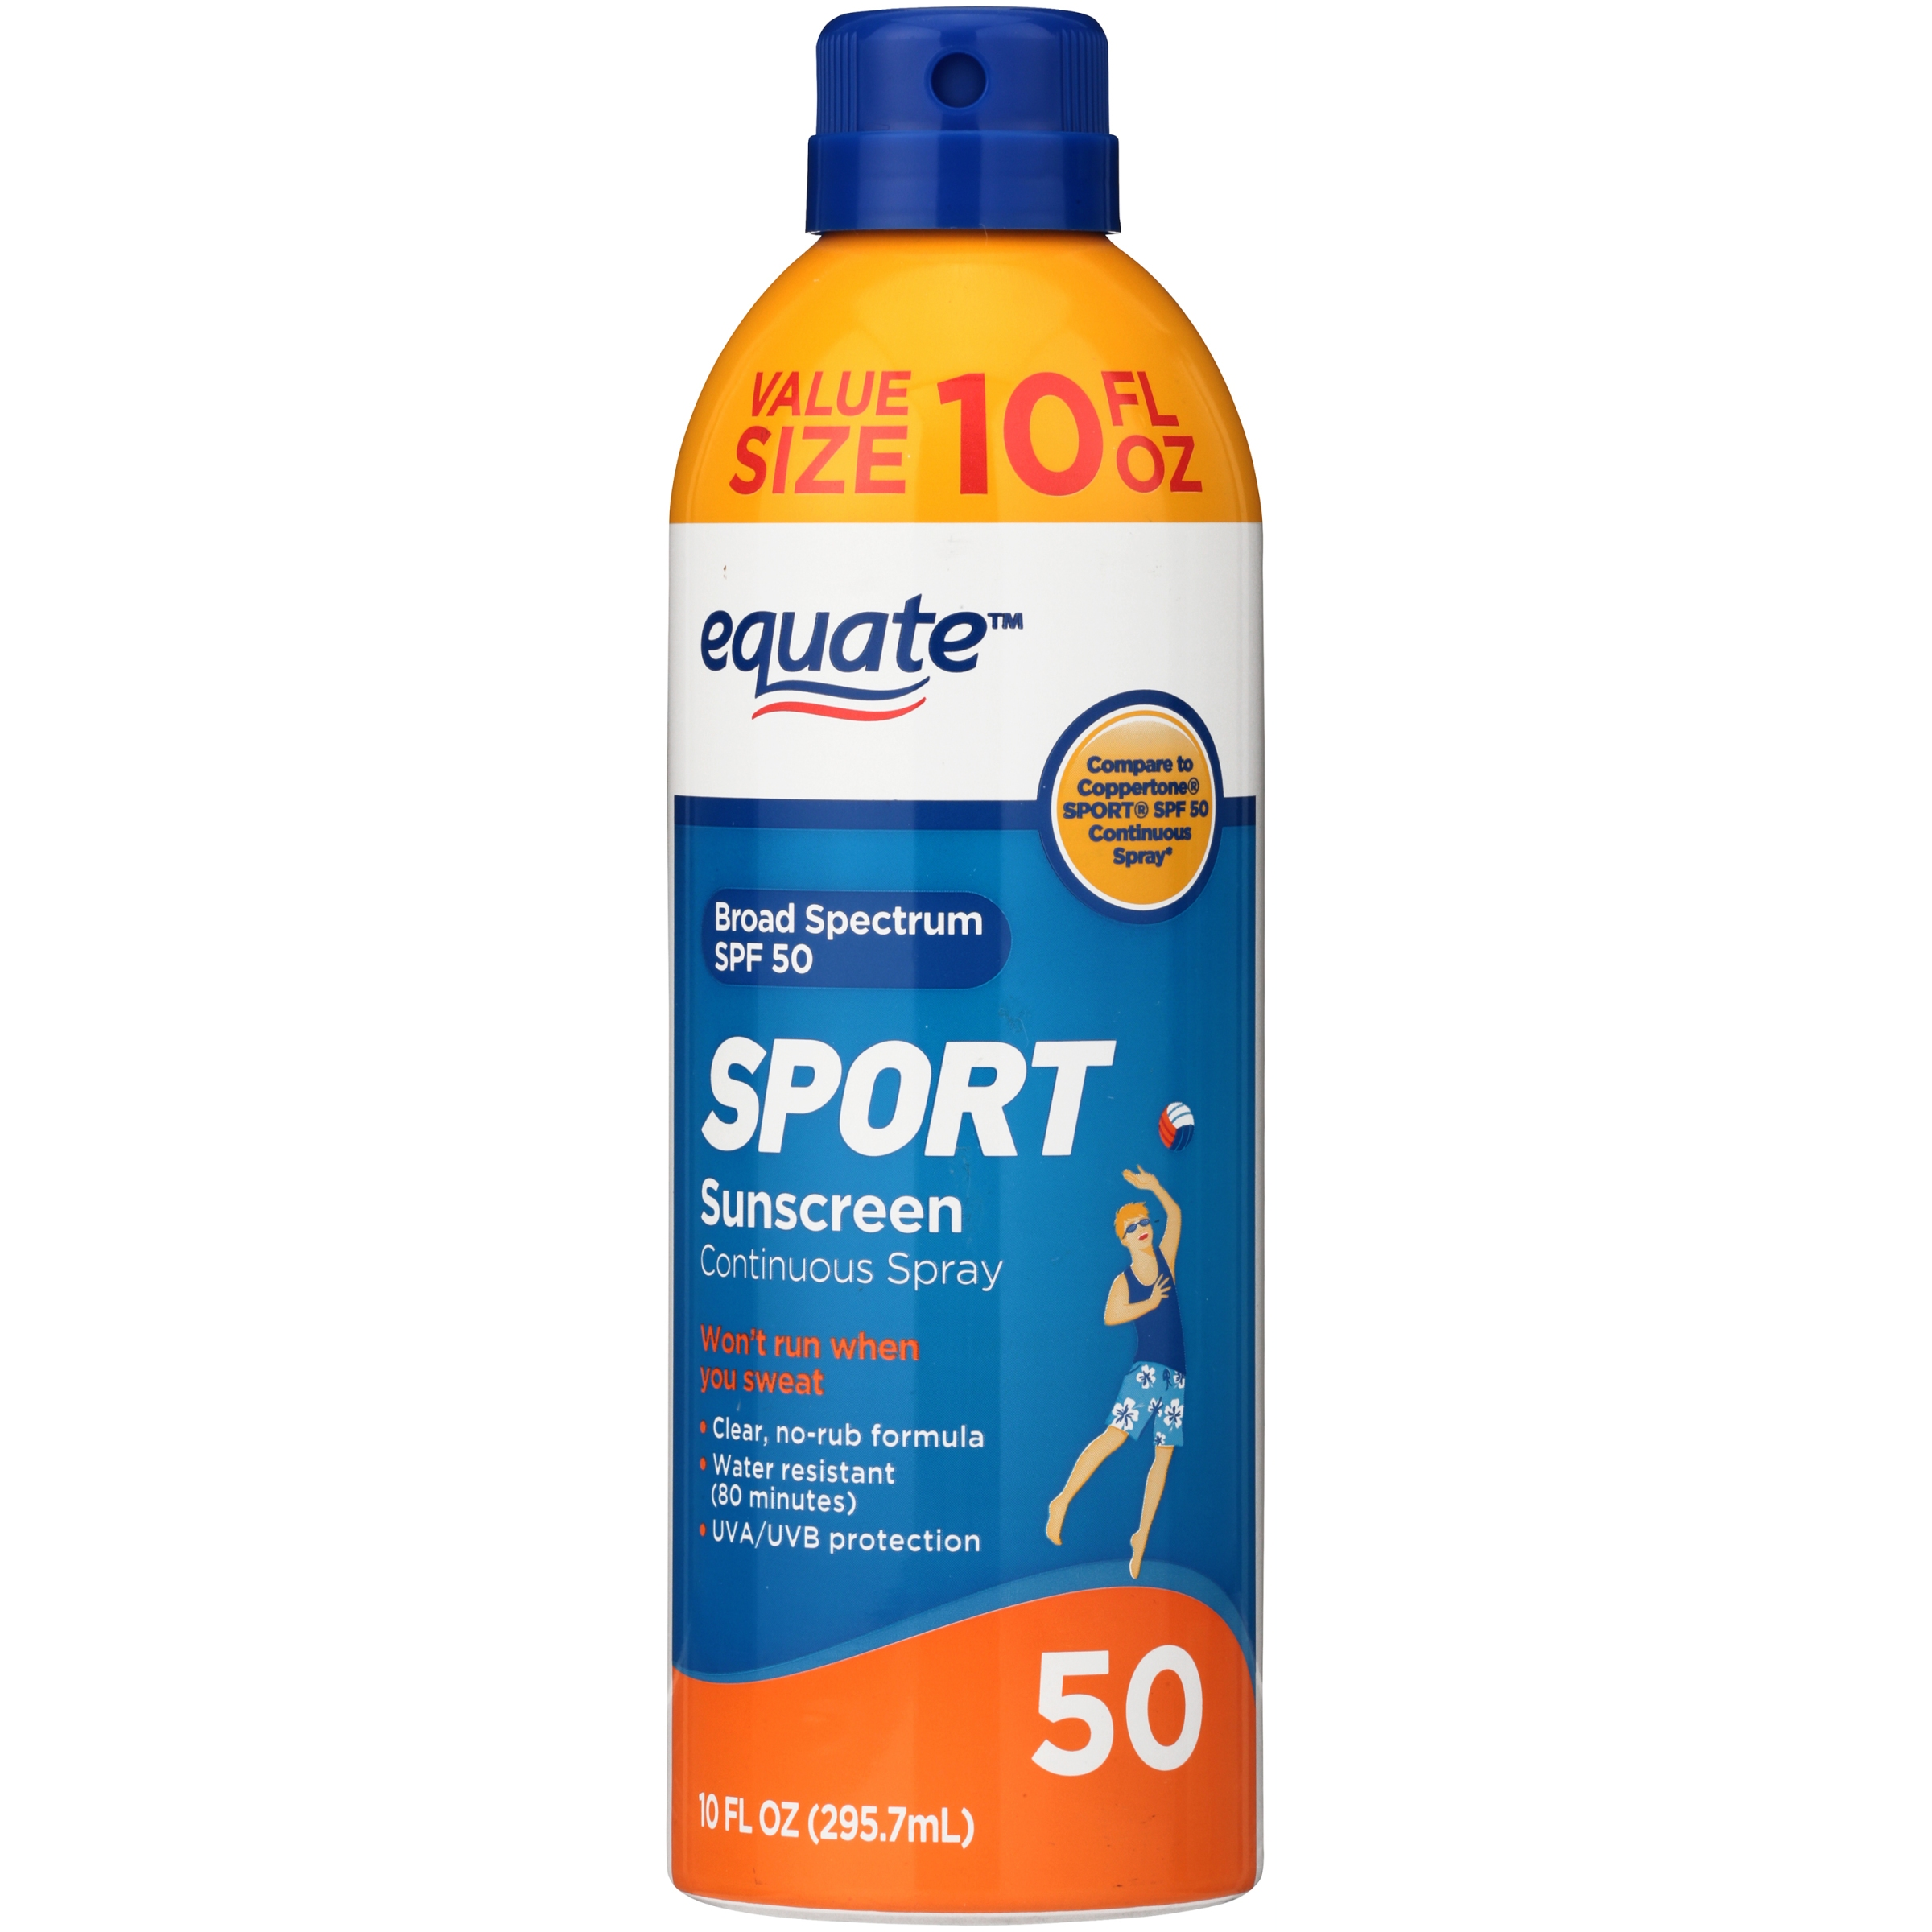 Equate Sport Broad Spectrum Sunscreen Continuous Spray, SPF 50, 10 oz